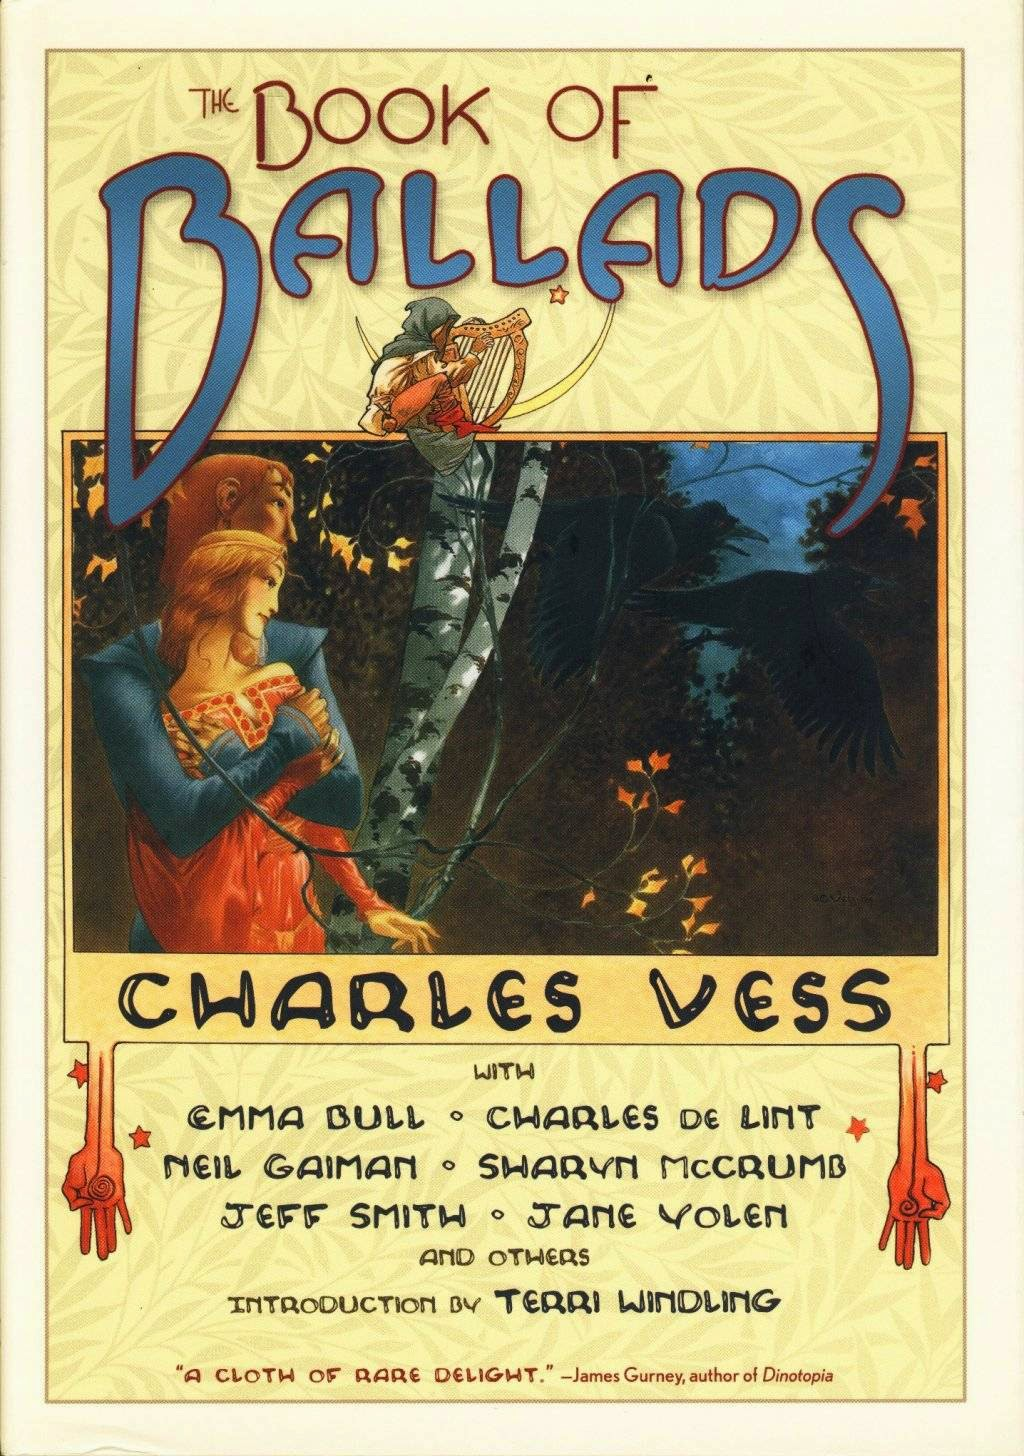 http://discover.halifaxpubliclibraries.ca/?q=author:charles%20vess